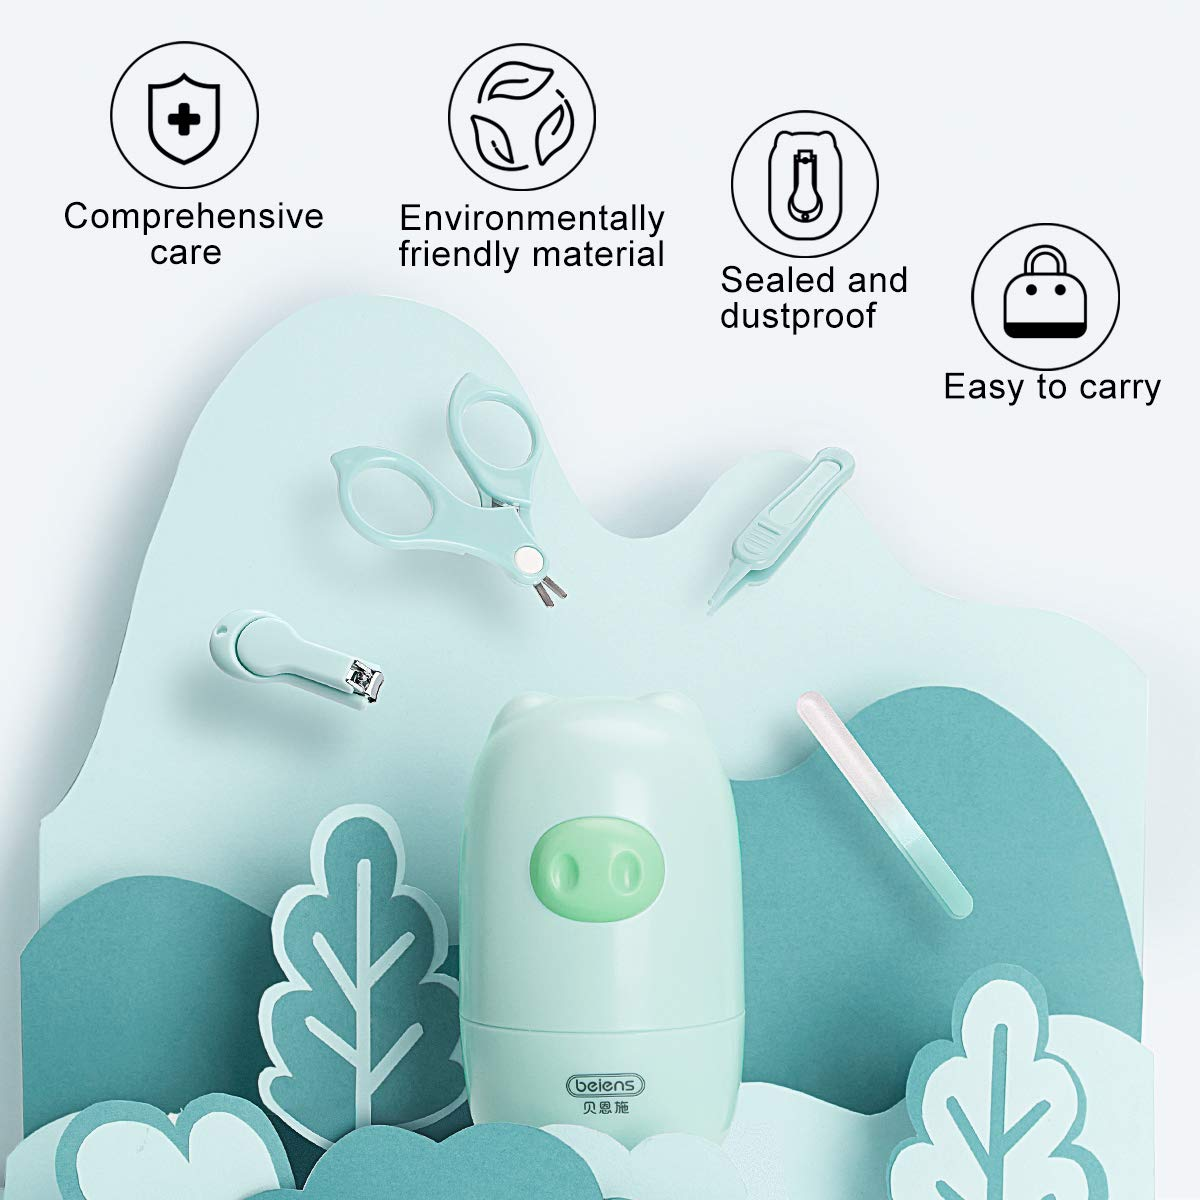 Baby Nail Kit, Scissors, Clipper, Nail File, Tweezers 4 in 1, Safety Baby Grooming Kit with Cute Case for Newborn,Infant,Toddler,Kids